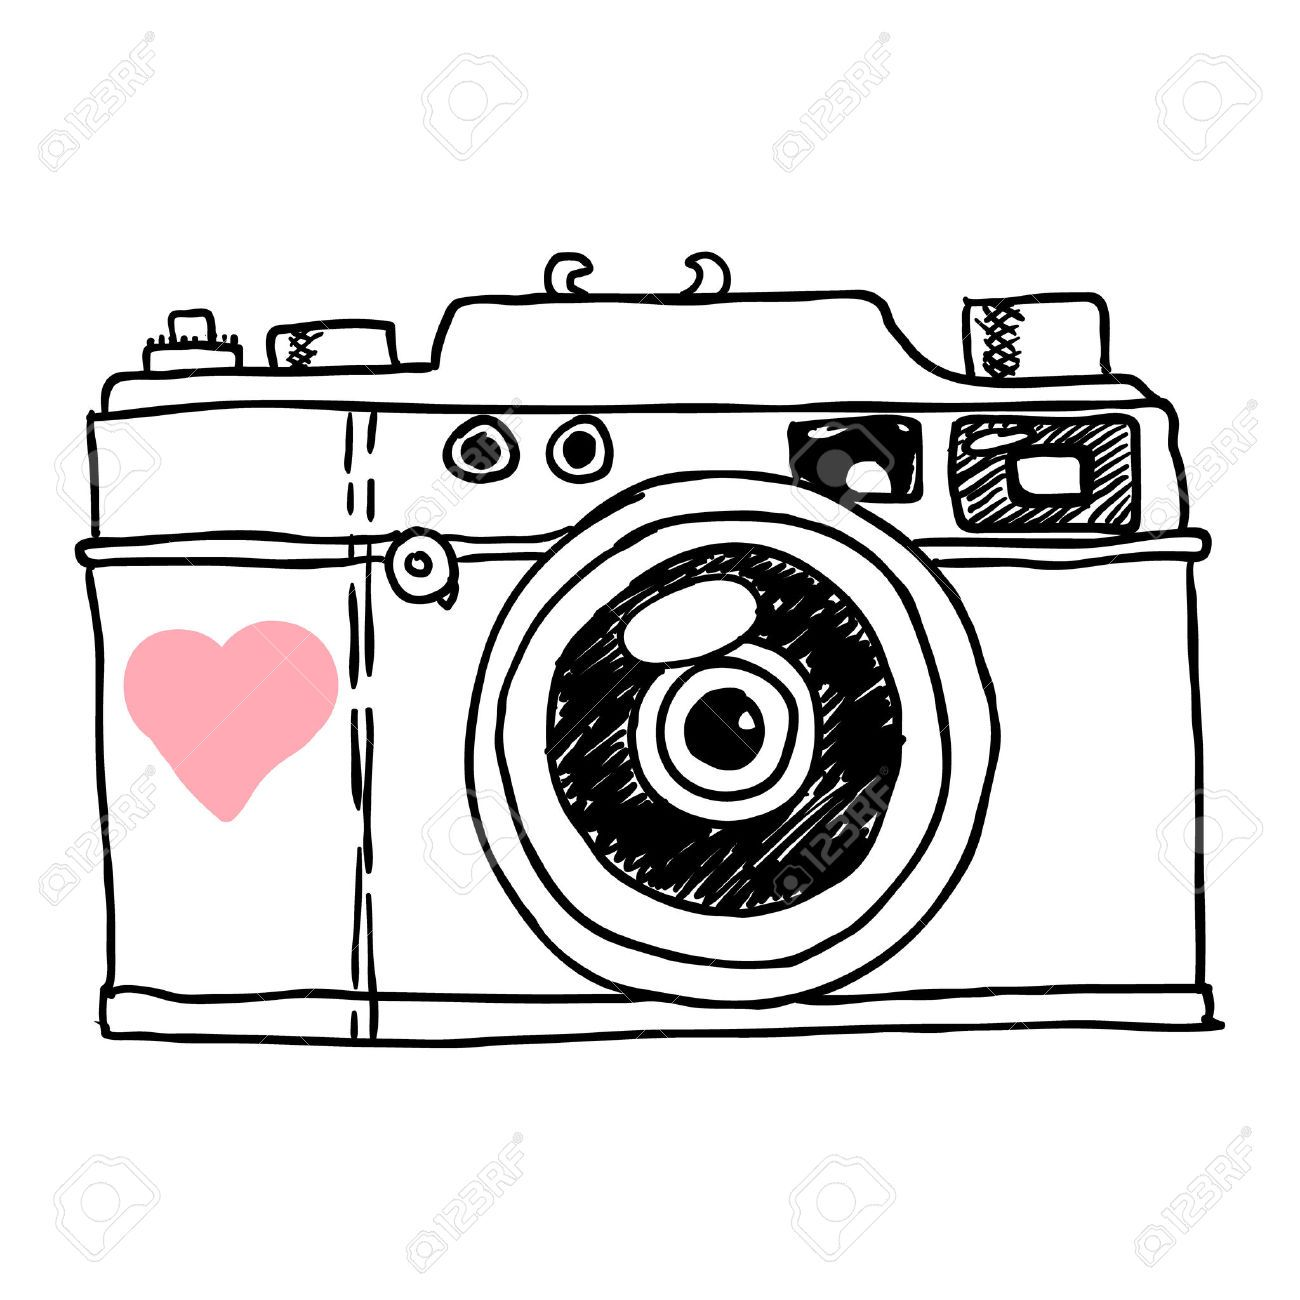 Polaroid Vector by Jenna Dupuis at | kuntzman | Pinterest ... for Camera Equipment Clipart  587fsj